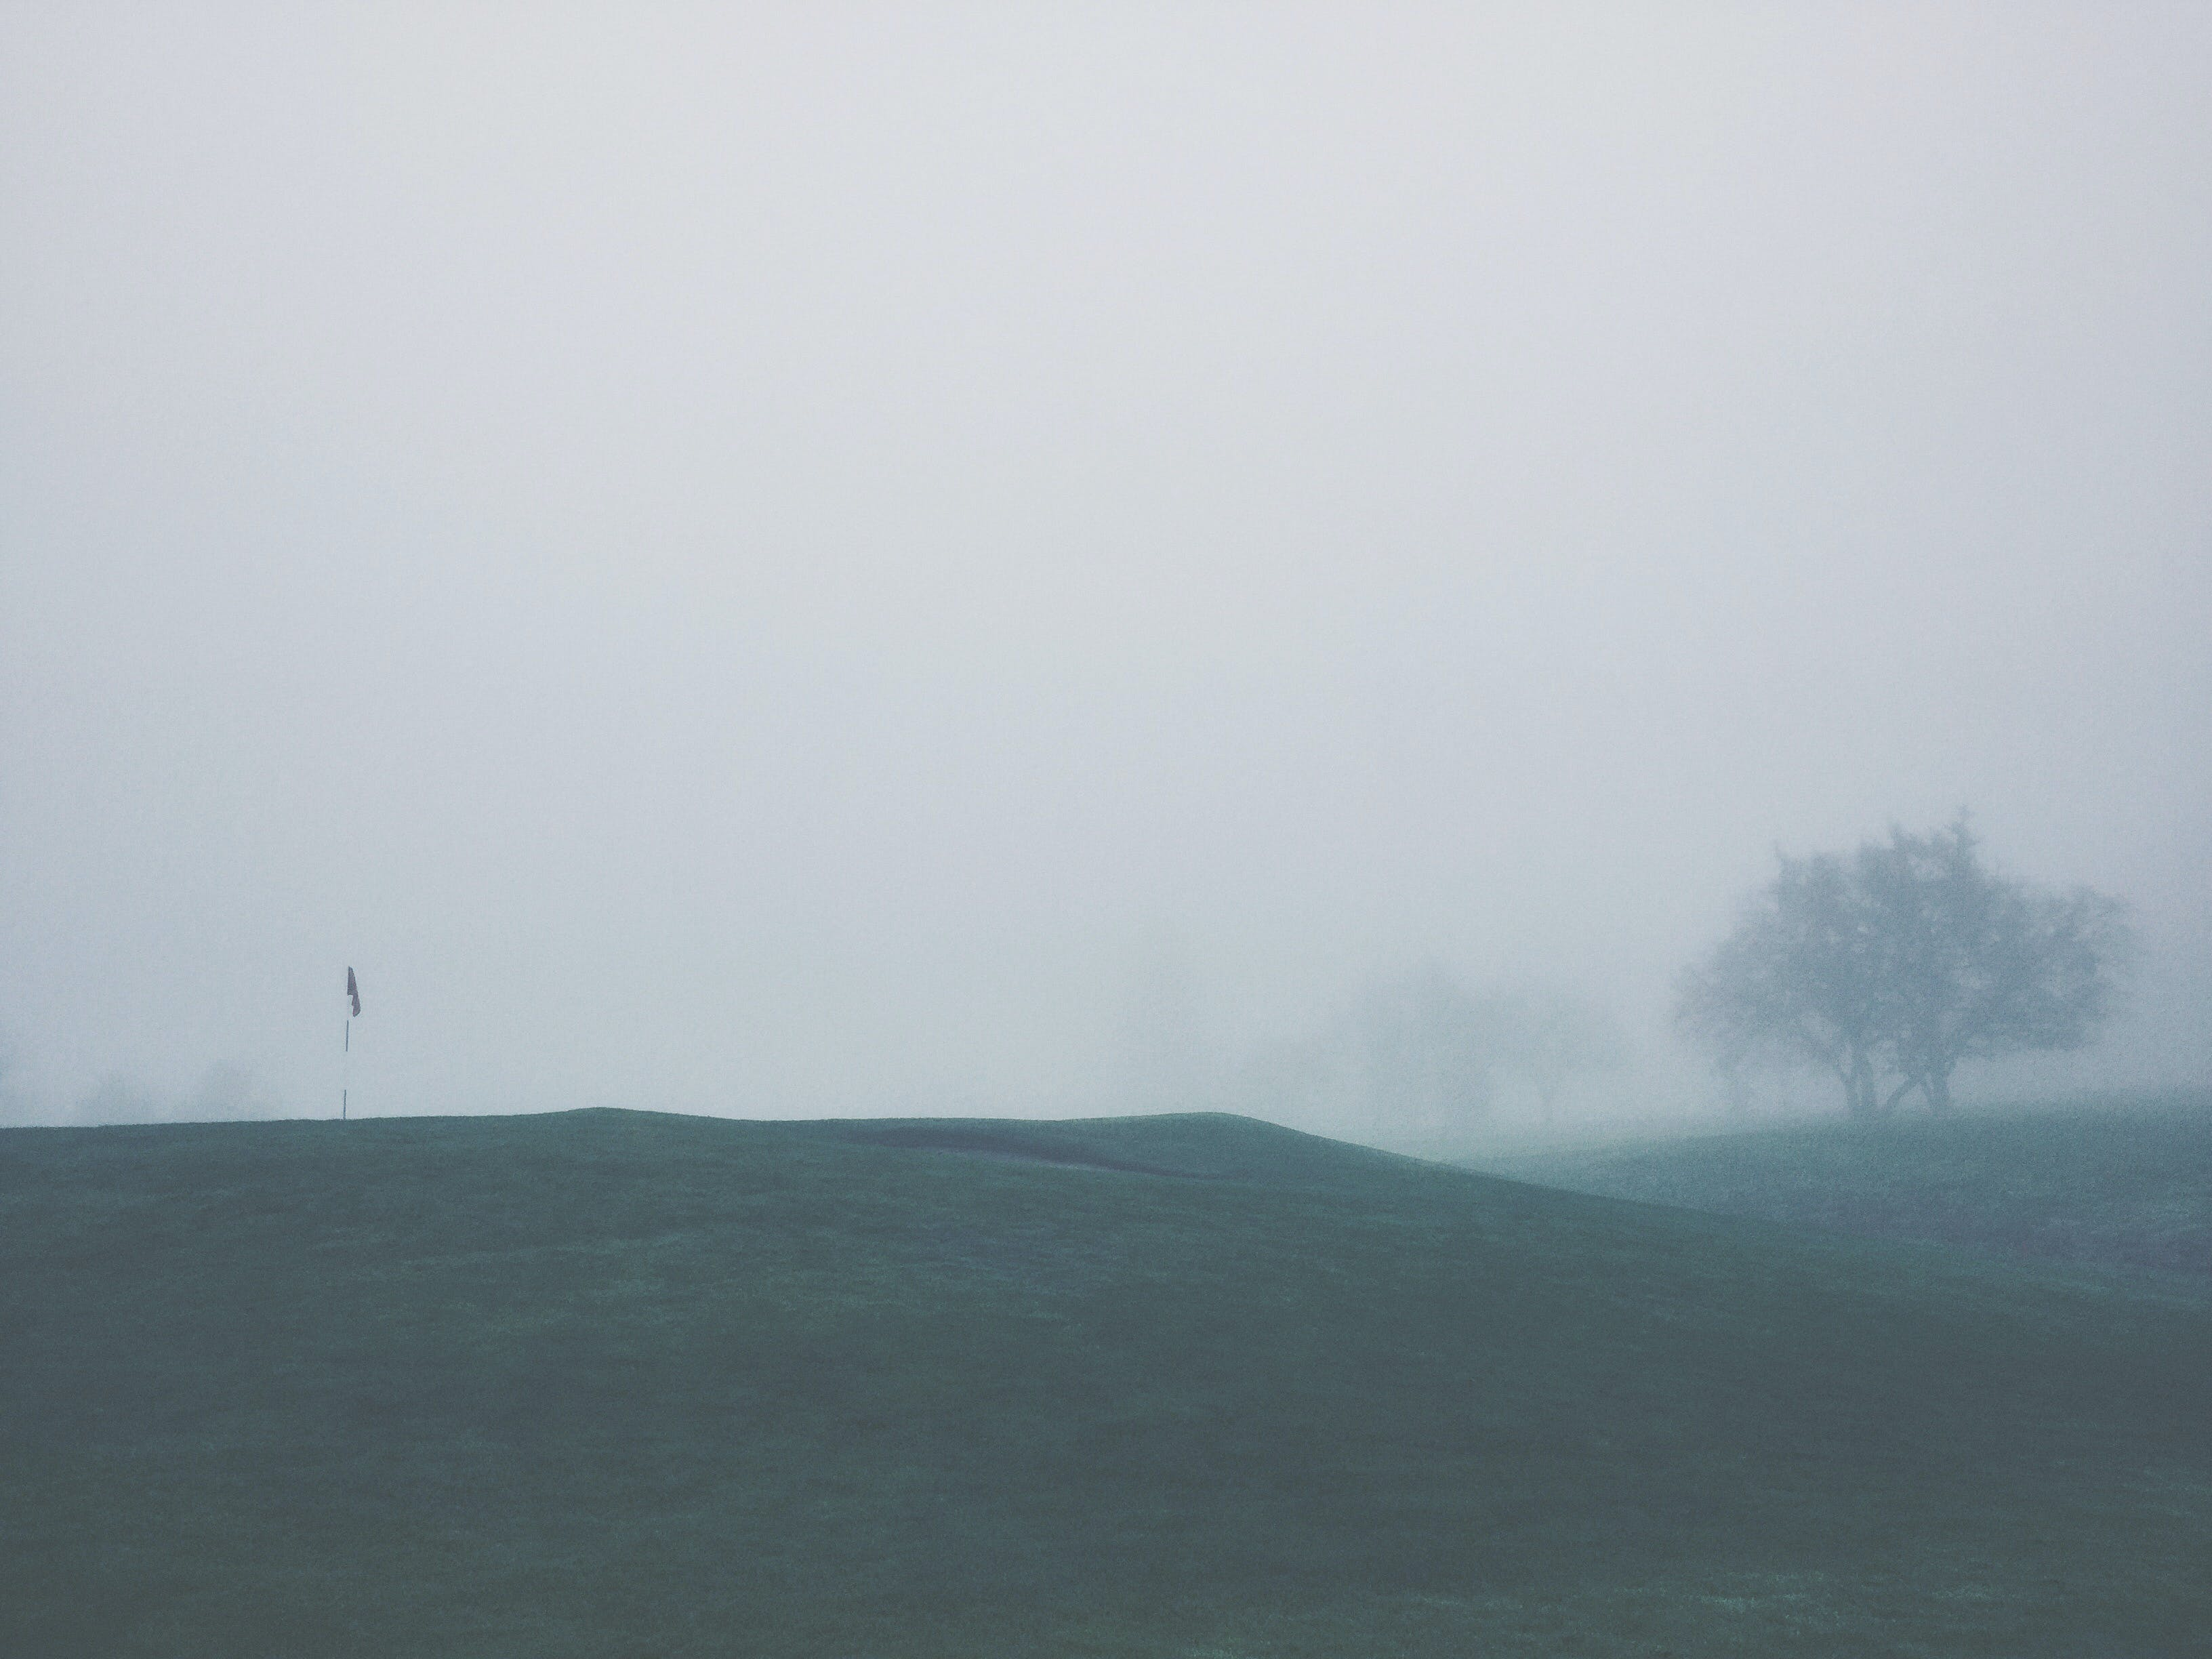 Free stock photo of landscape, fog, foggy, mist